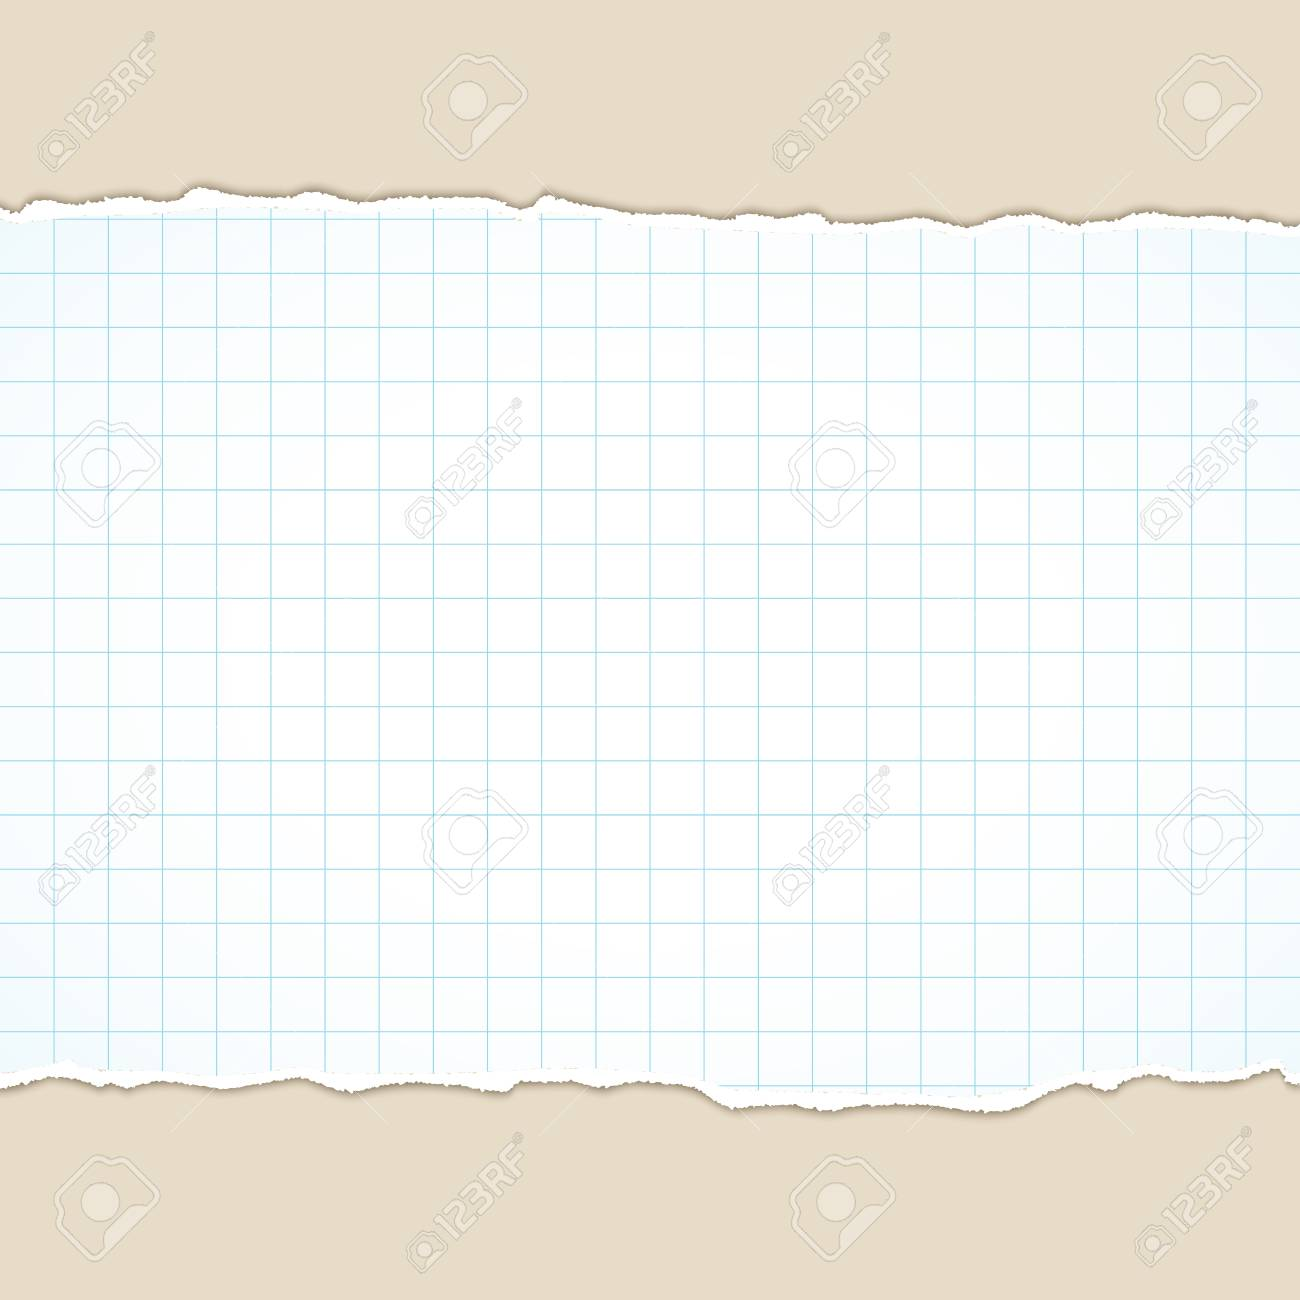 Paper Scraps With Teared EdgesTorn Banner Space For TextDesign Template